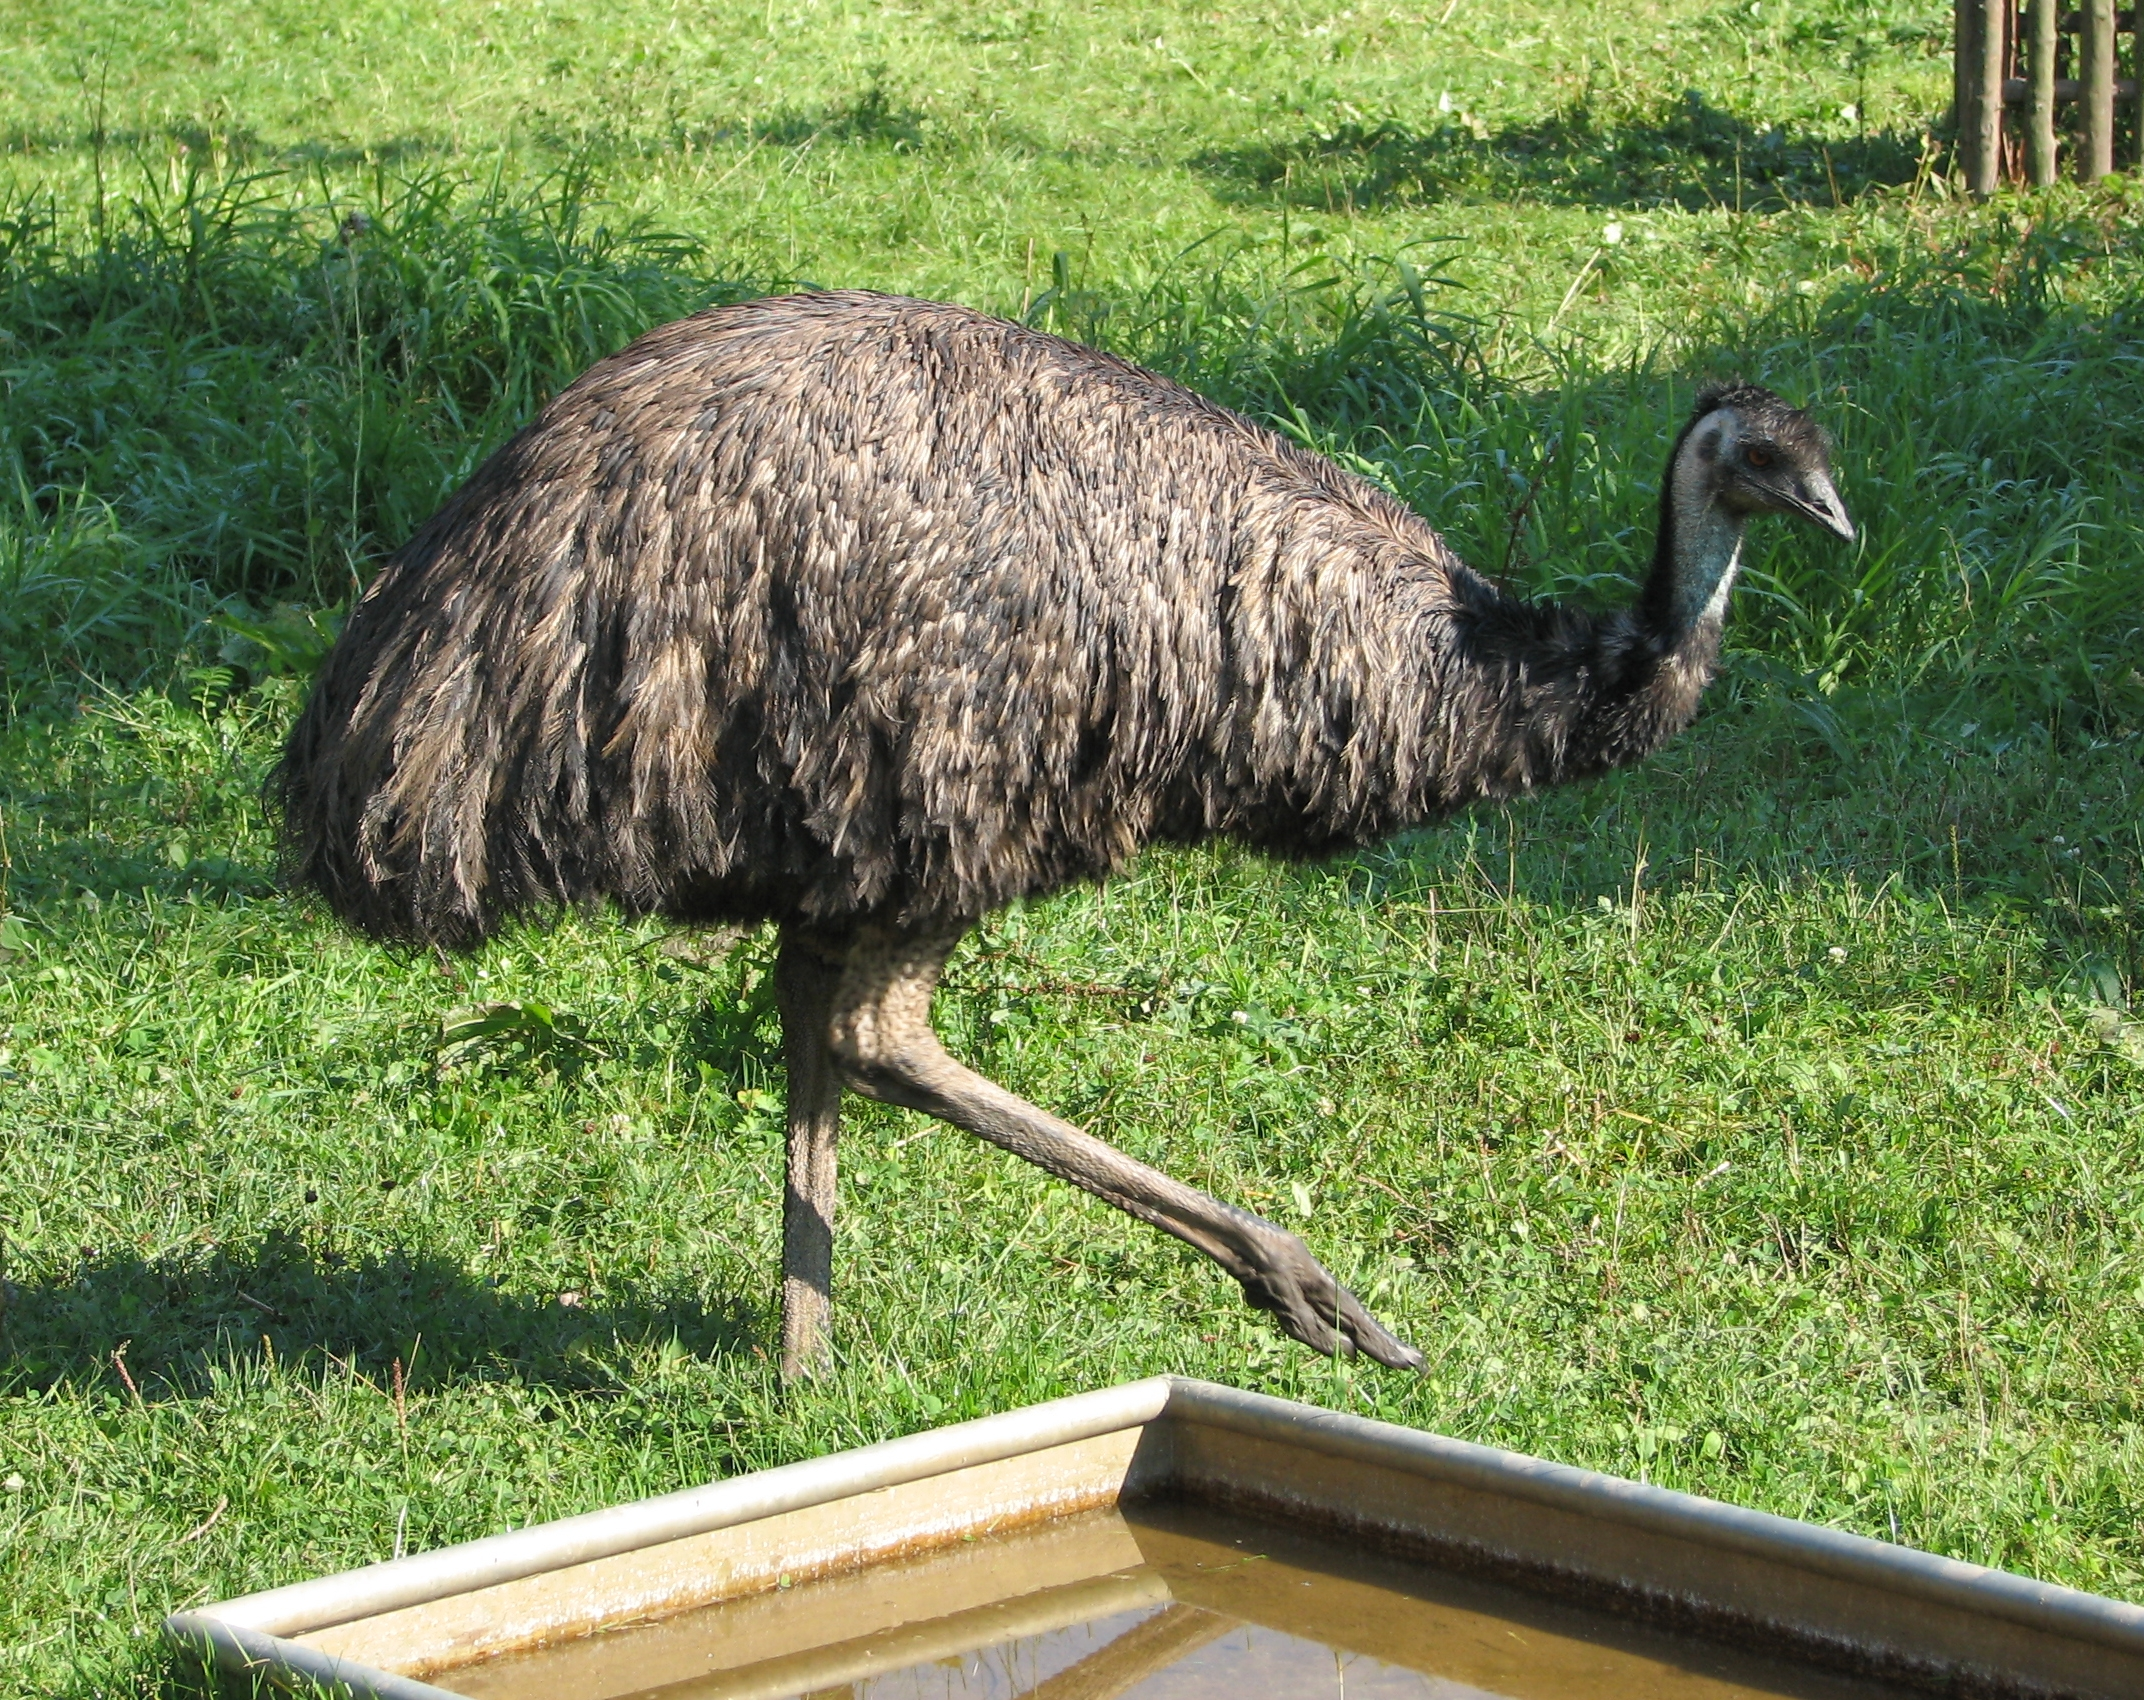 File:Emu-ostrich.jpg - Wikimedia Commons